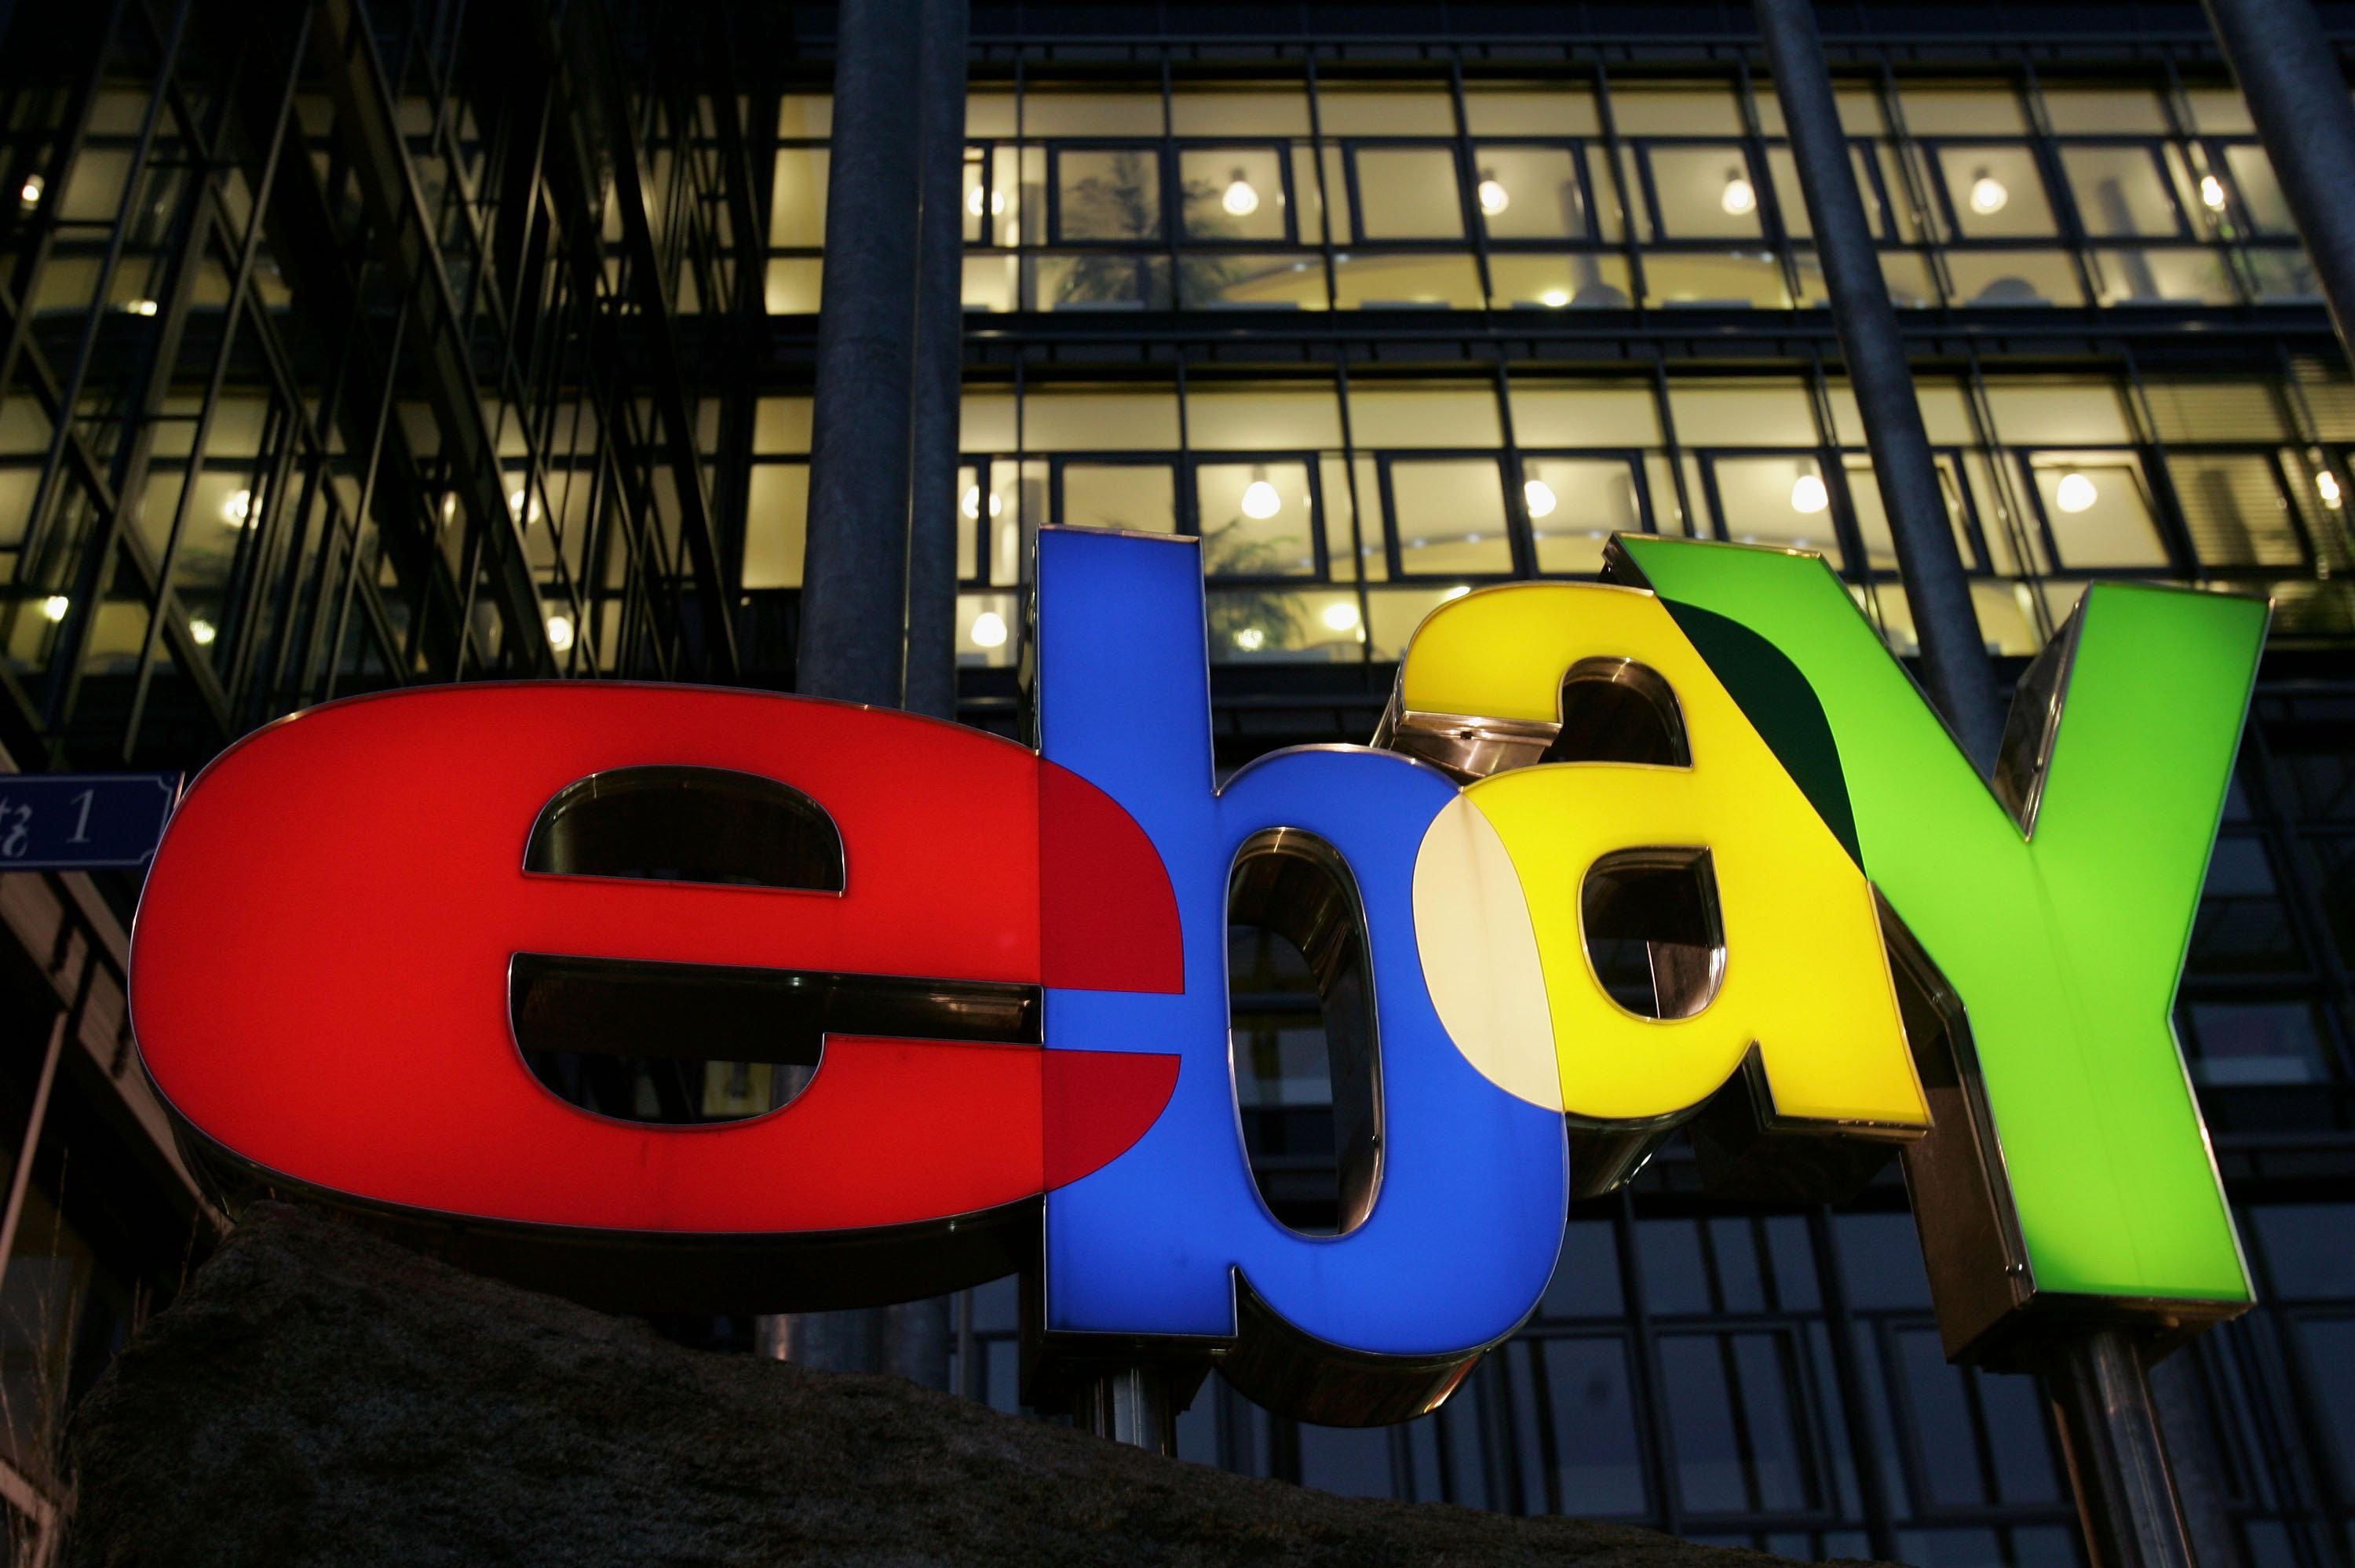 Six Former eBay Employees Face Federal Charges For